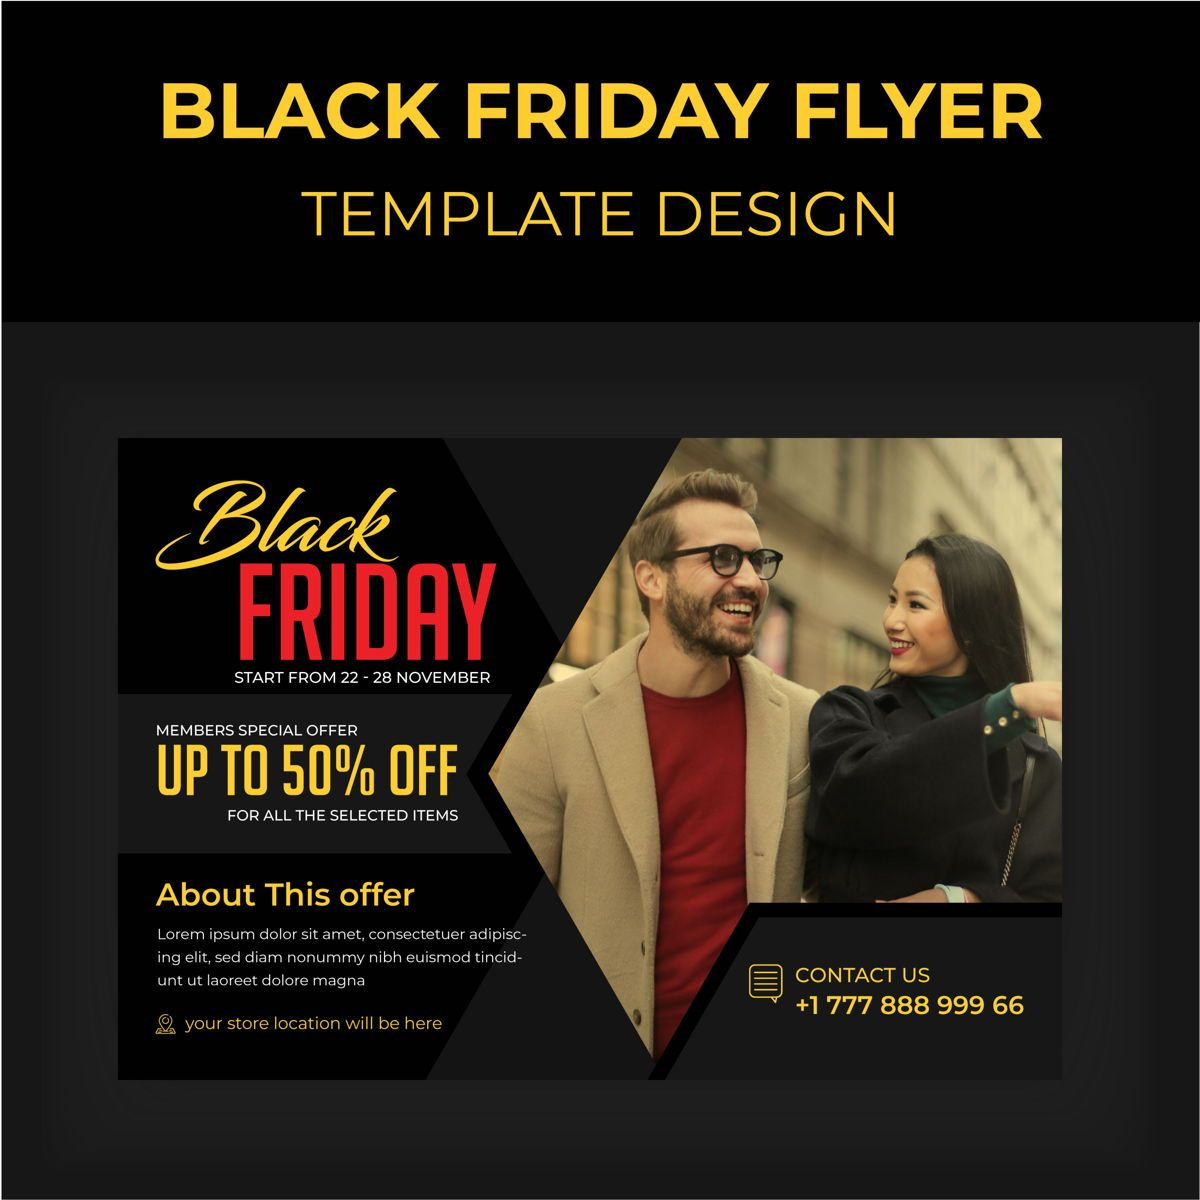 Black Friday Service Promotional flyer design, 08876, 3D — PoweredTemplate.com